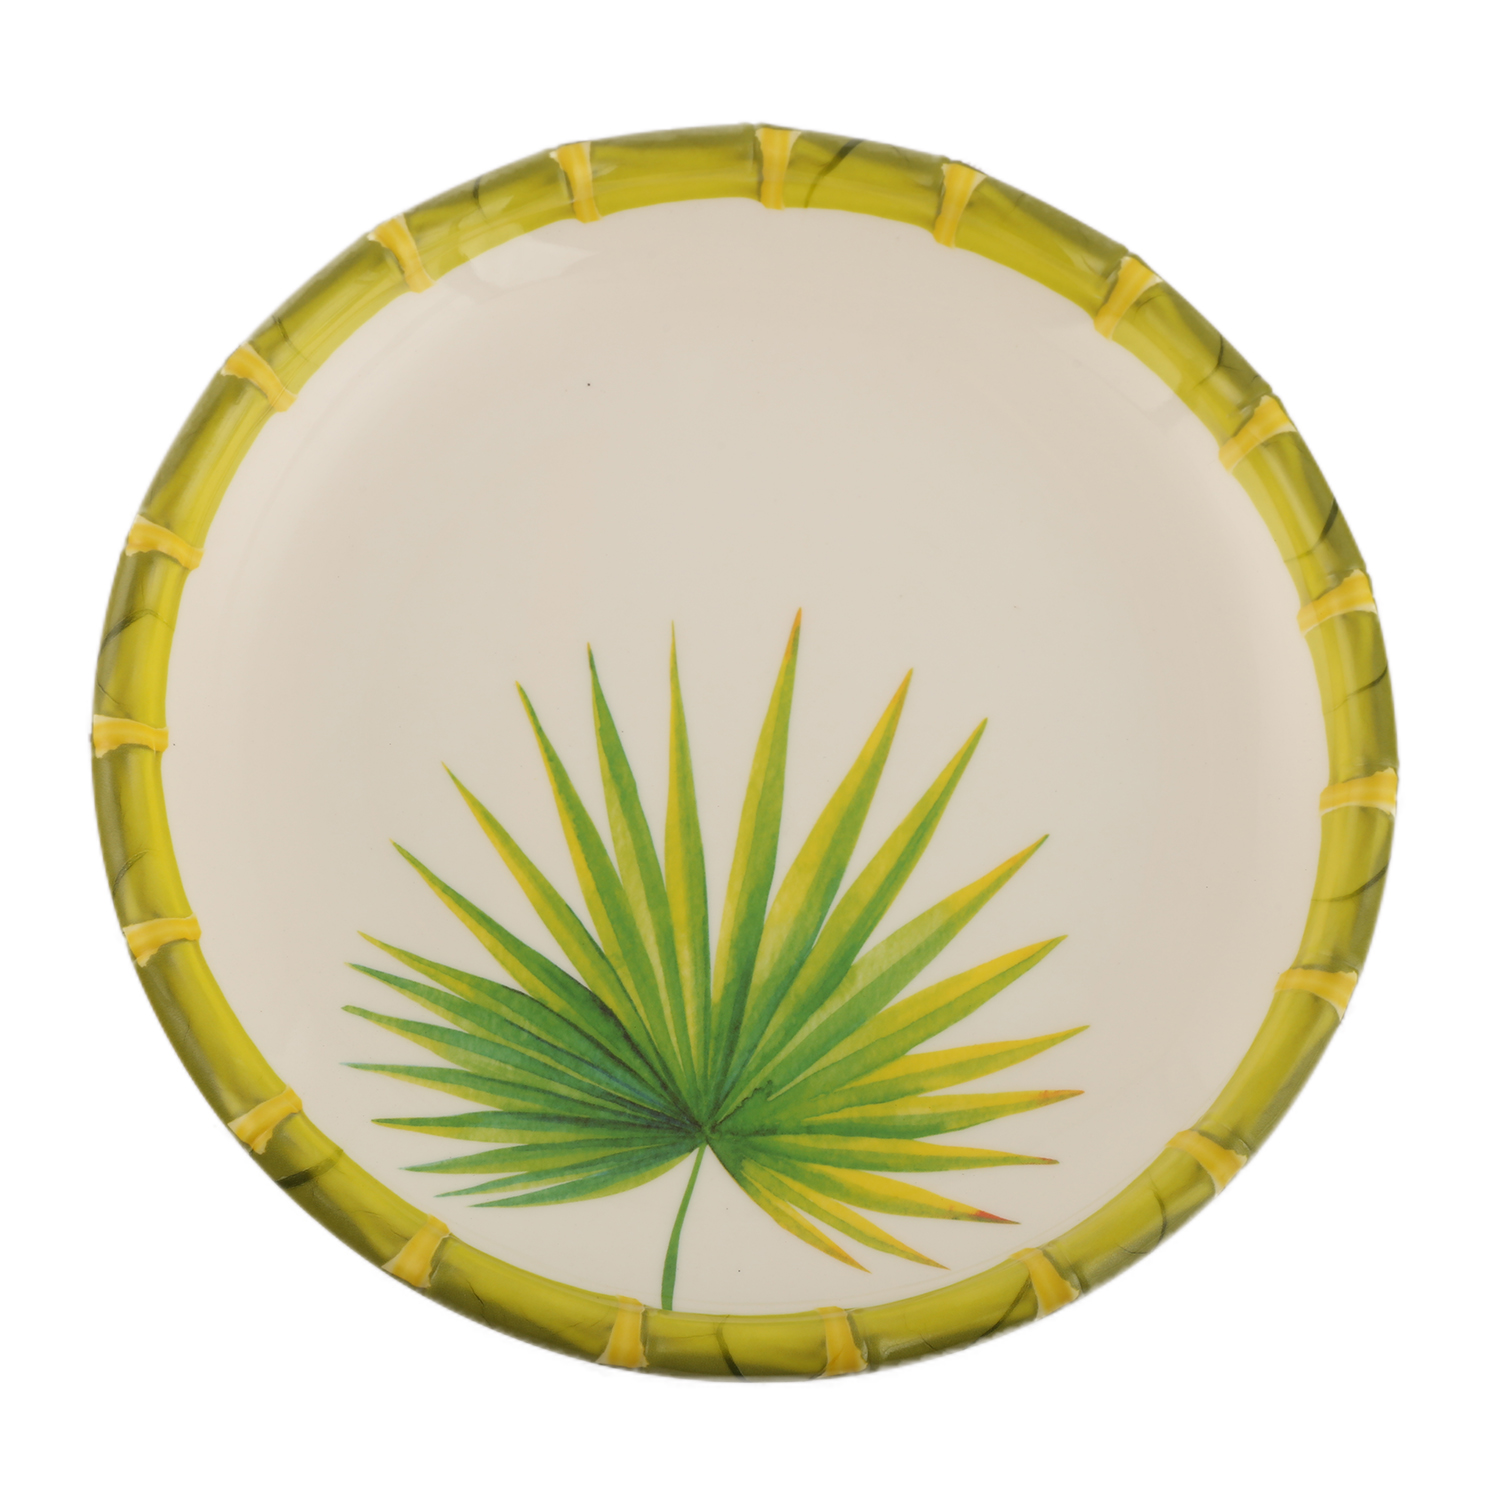 Bamboo Palm Leaf Small Plate Leaf Food Grade Melamine Plates in Green & White Colour by Living Essence